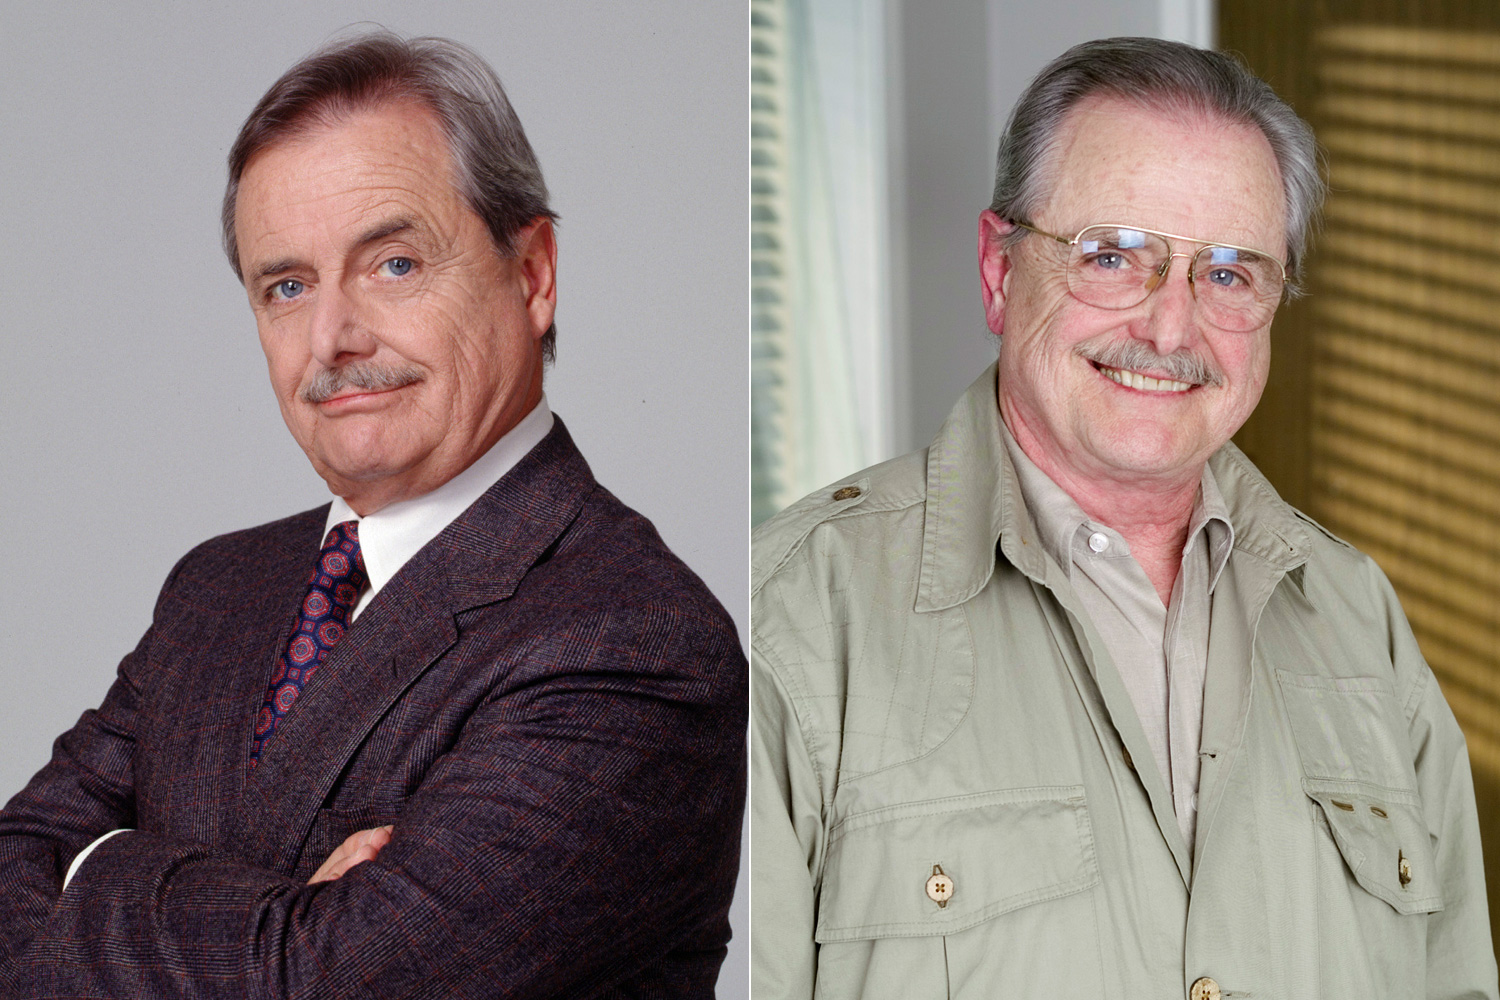 William Daniels has been confirmed as a guest star in 'Girl Meets World,' reprising his role as George Feeny. Daniels is 87 years old now, but that just means Feeny will have an extra 14 years of wisdom inside him. Where does he put it, honestly?